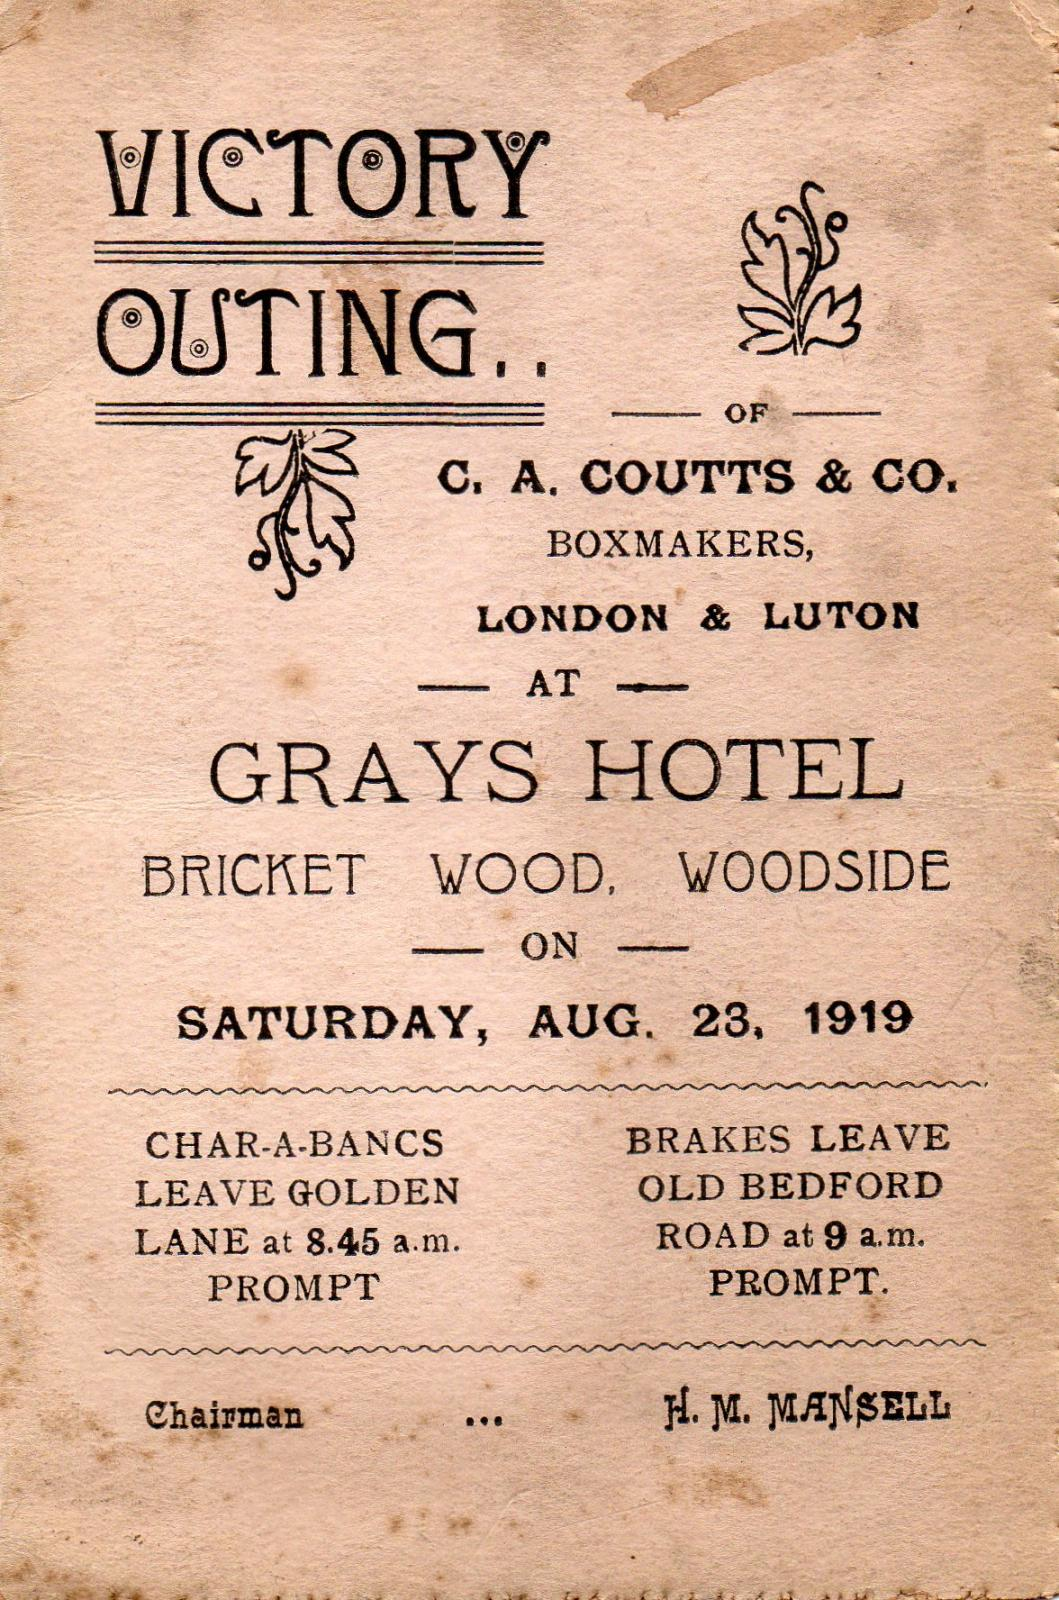 Victory outing of C A Coutts on 23 August 1919